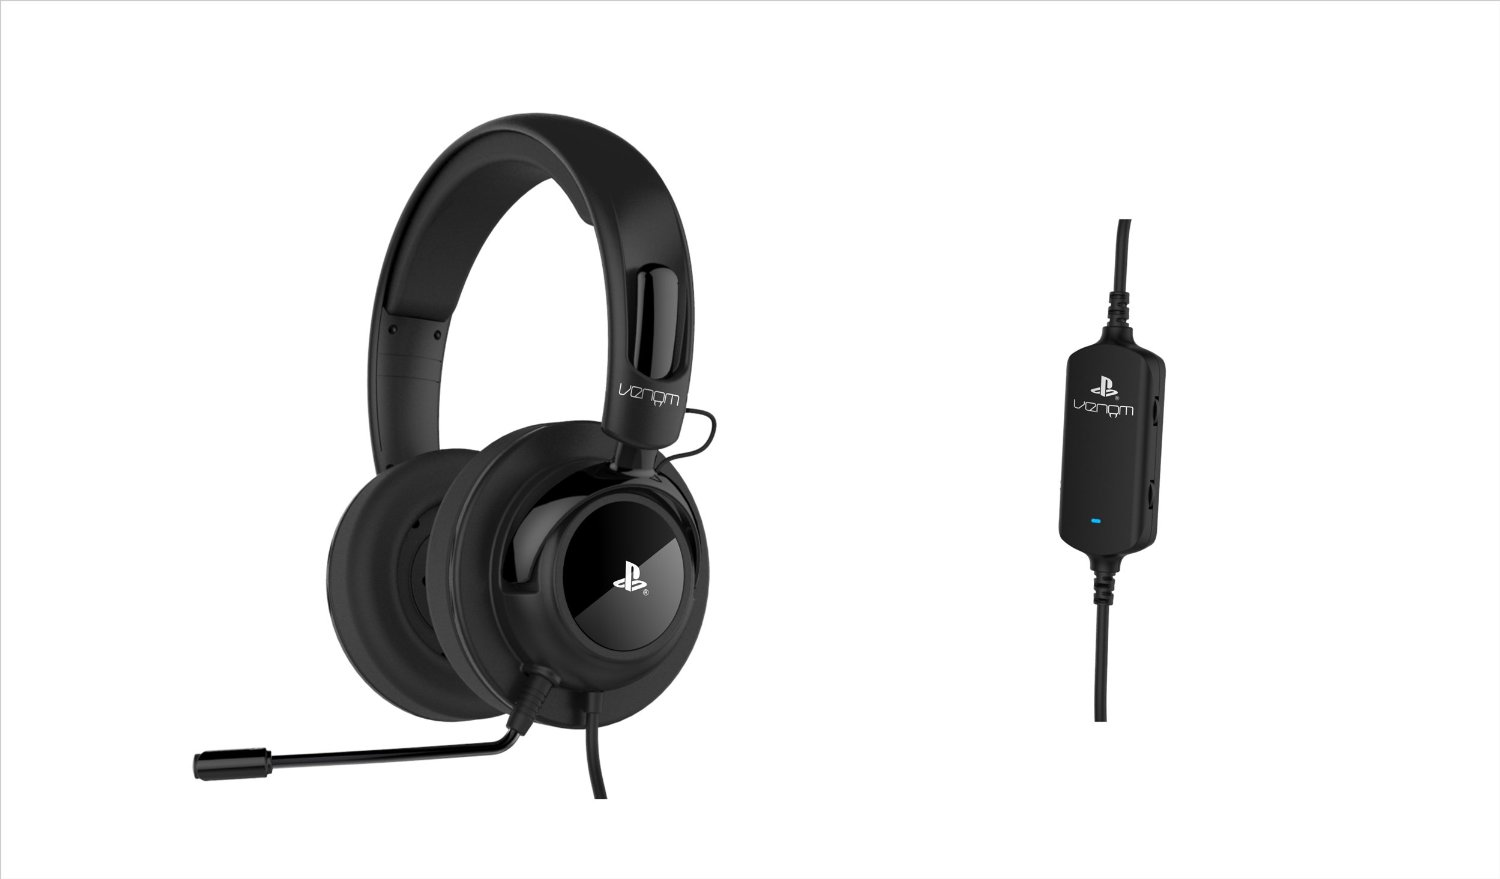 Venom Vibration Stereo Gaming Headset Review - PS3/PS4 9